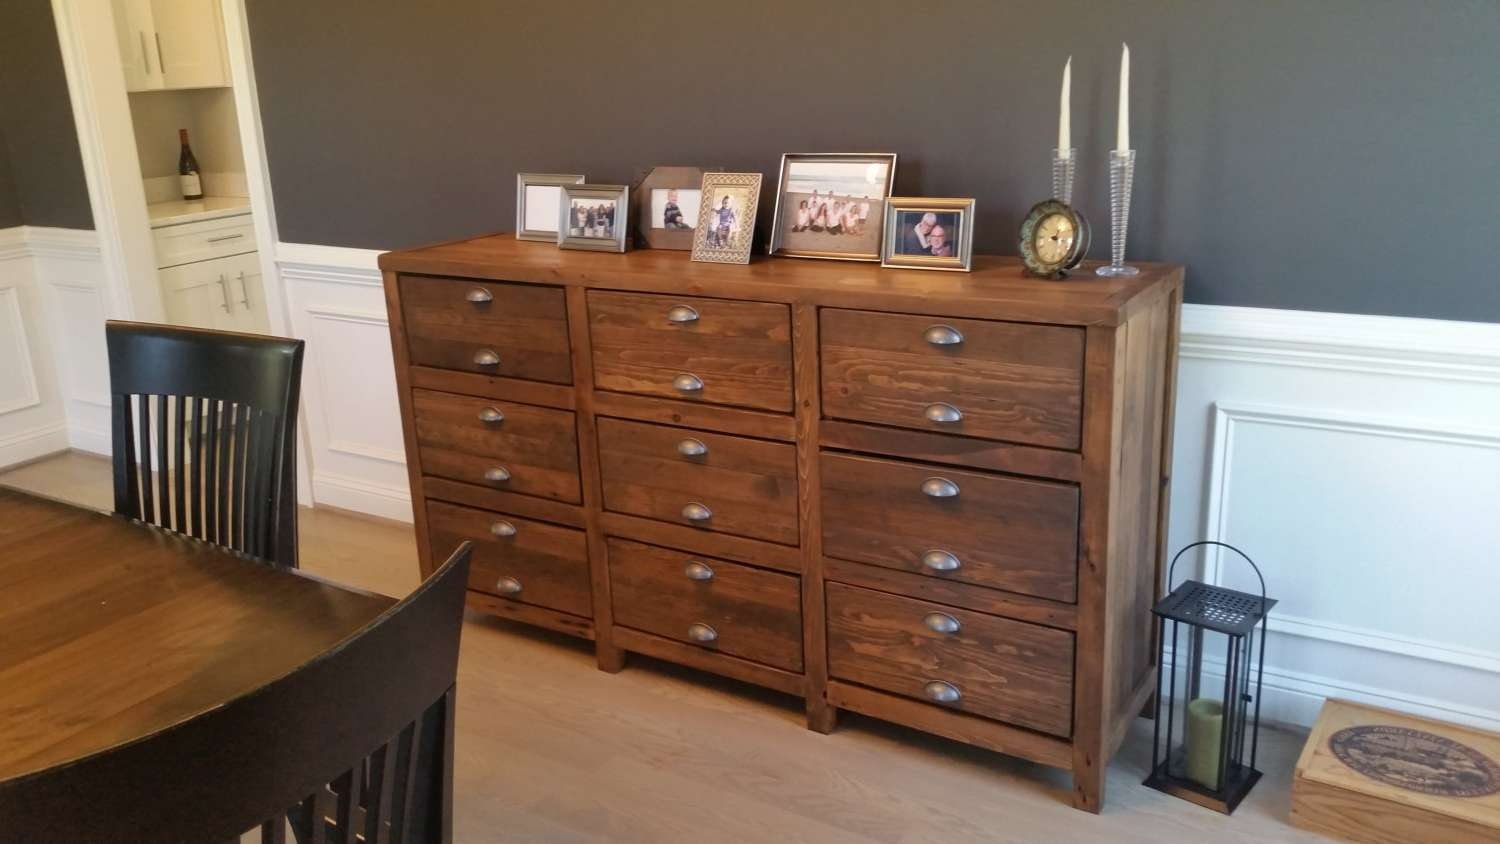 Decorating Rustic Buffet Table   Measuring Up Decoration With Regard To Rustic Sideboards Buffets (View 18 of 20)